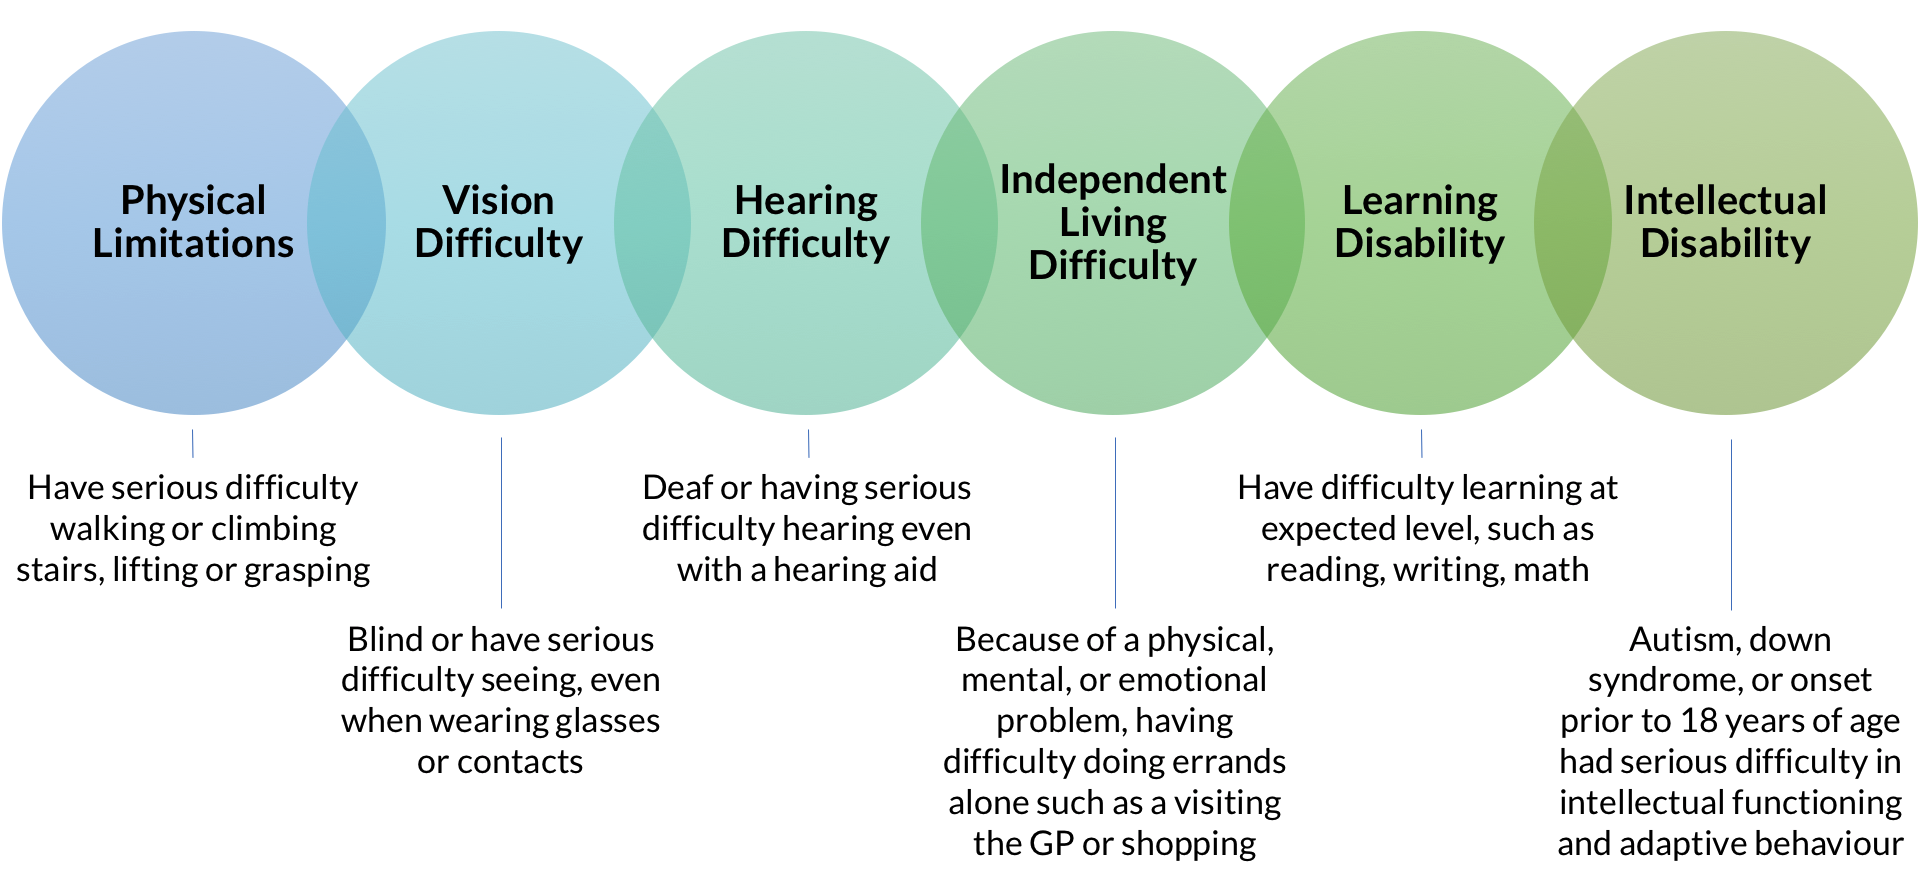 Types of Disabilities:  Physical Limitations, Vision Difficulty, Hearing Difficulty, Independent Living Difficulty, Learning Disability, Intellectual Disability Nielsen's Reaching Prevalent, Diverse Consumers with Disabilities Report, October 2016